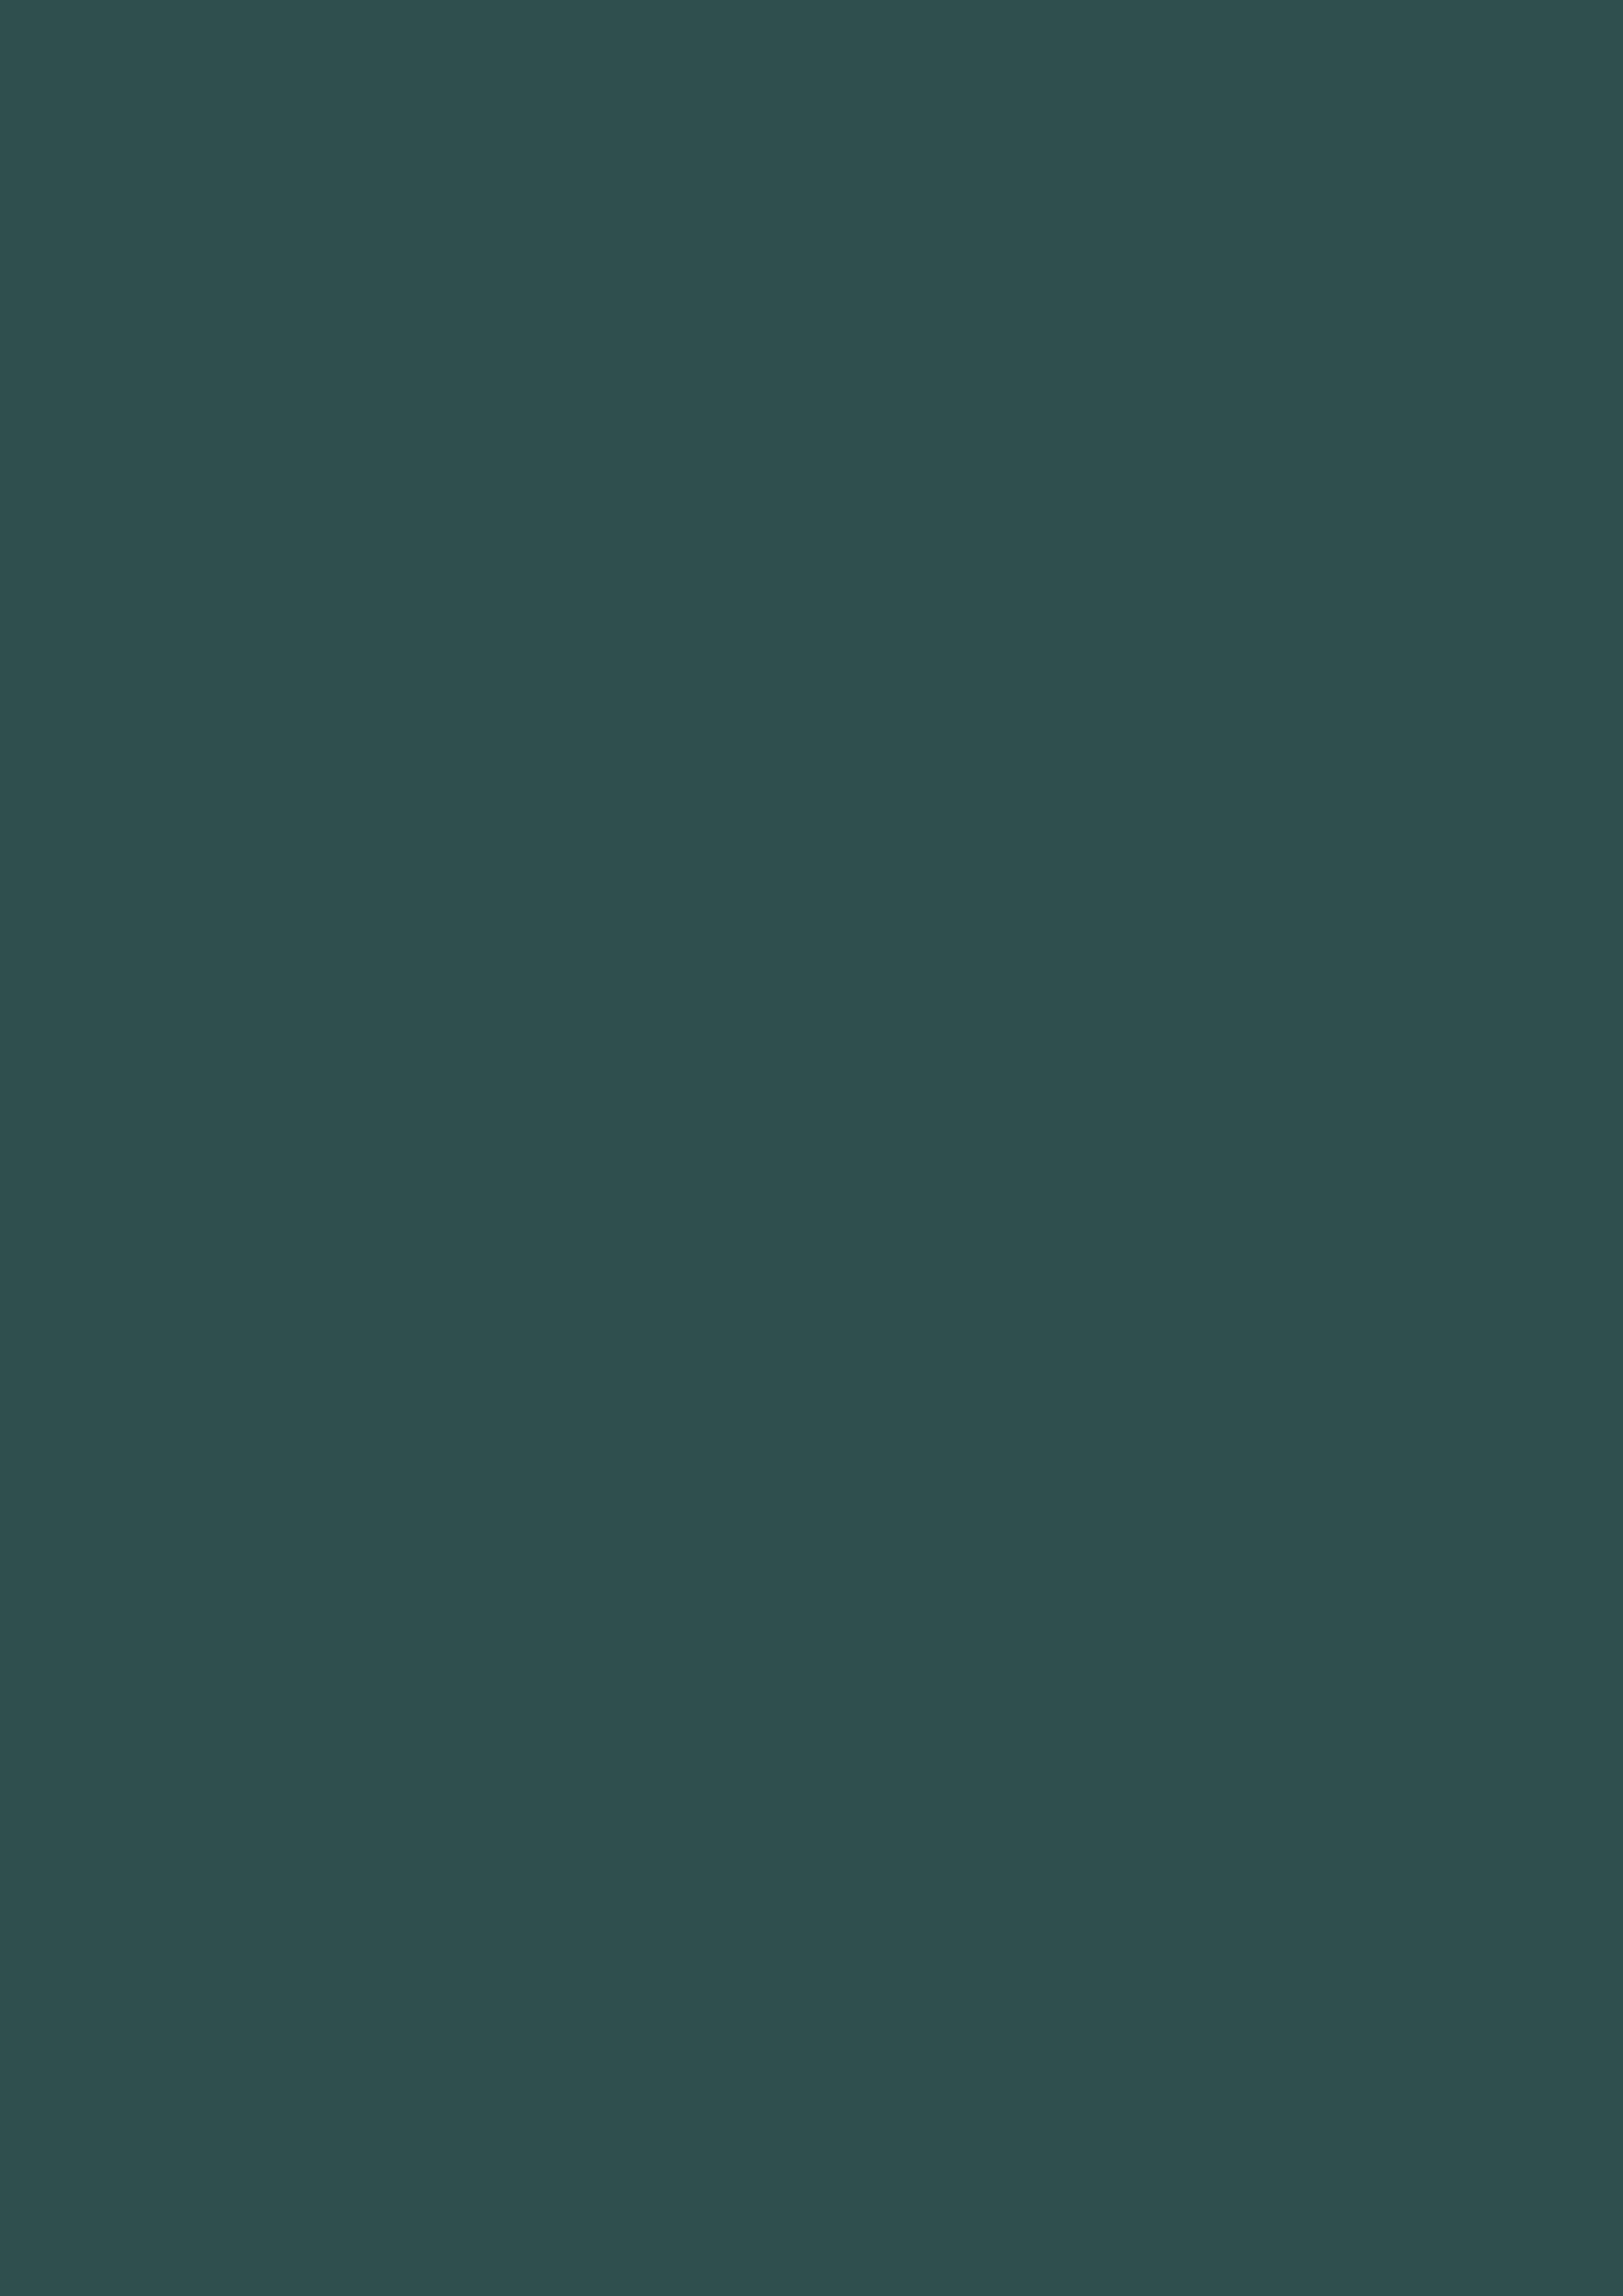 2480x3508 Dark Slate Gray Solid Color Background